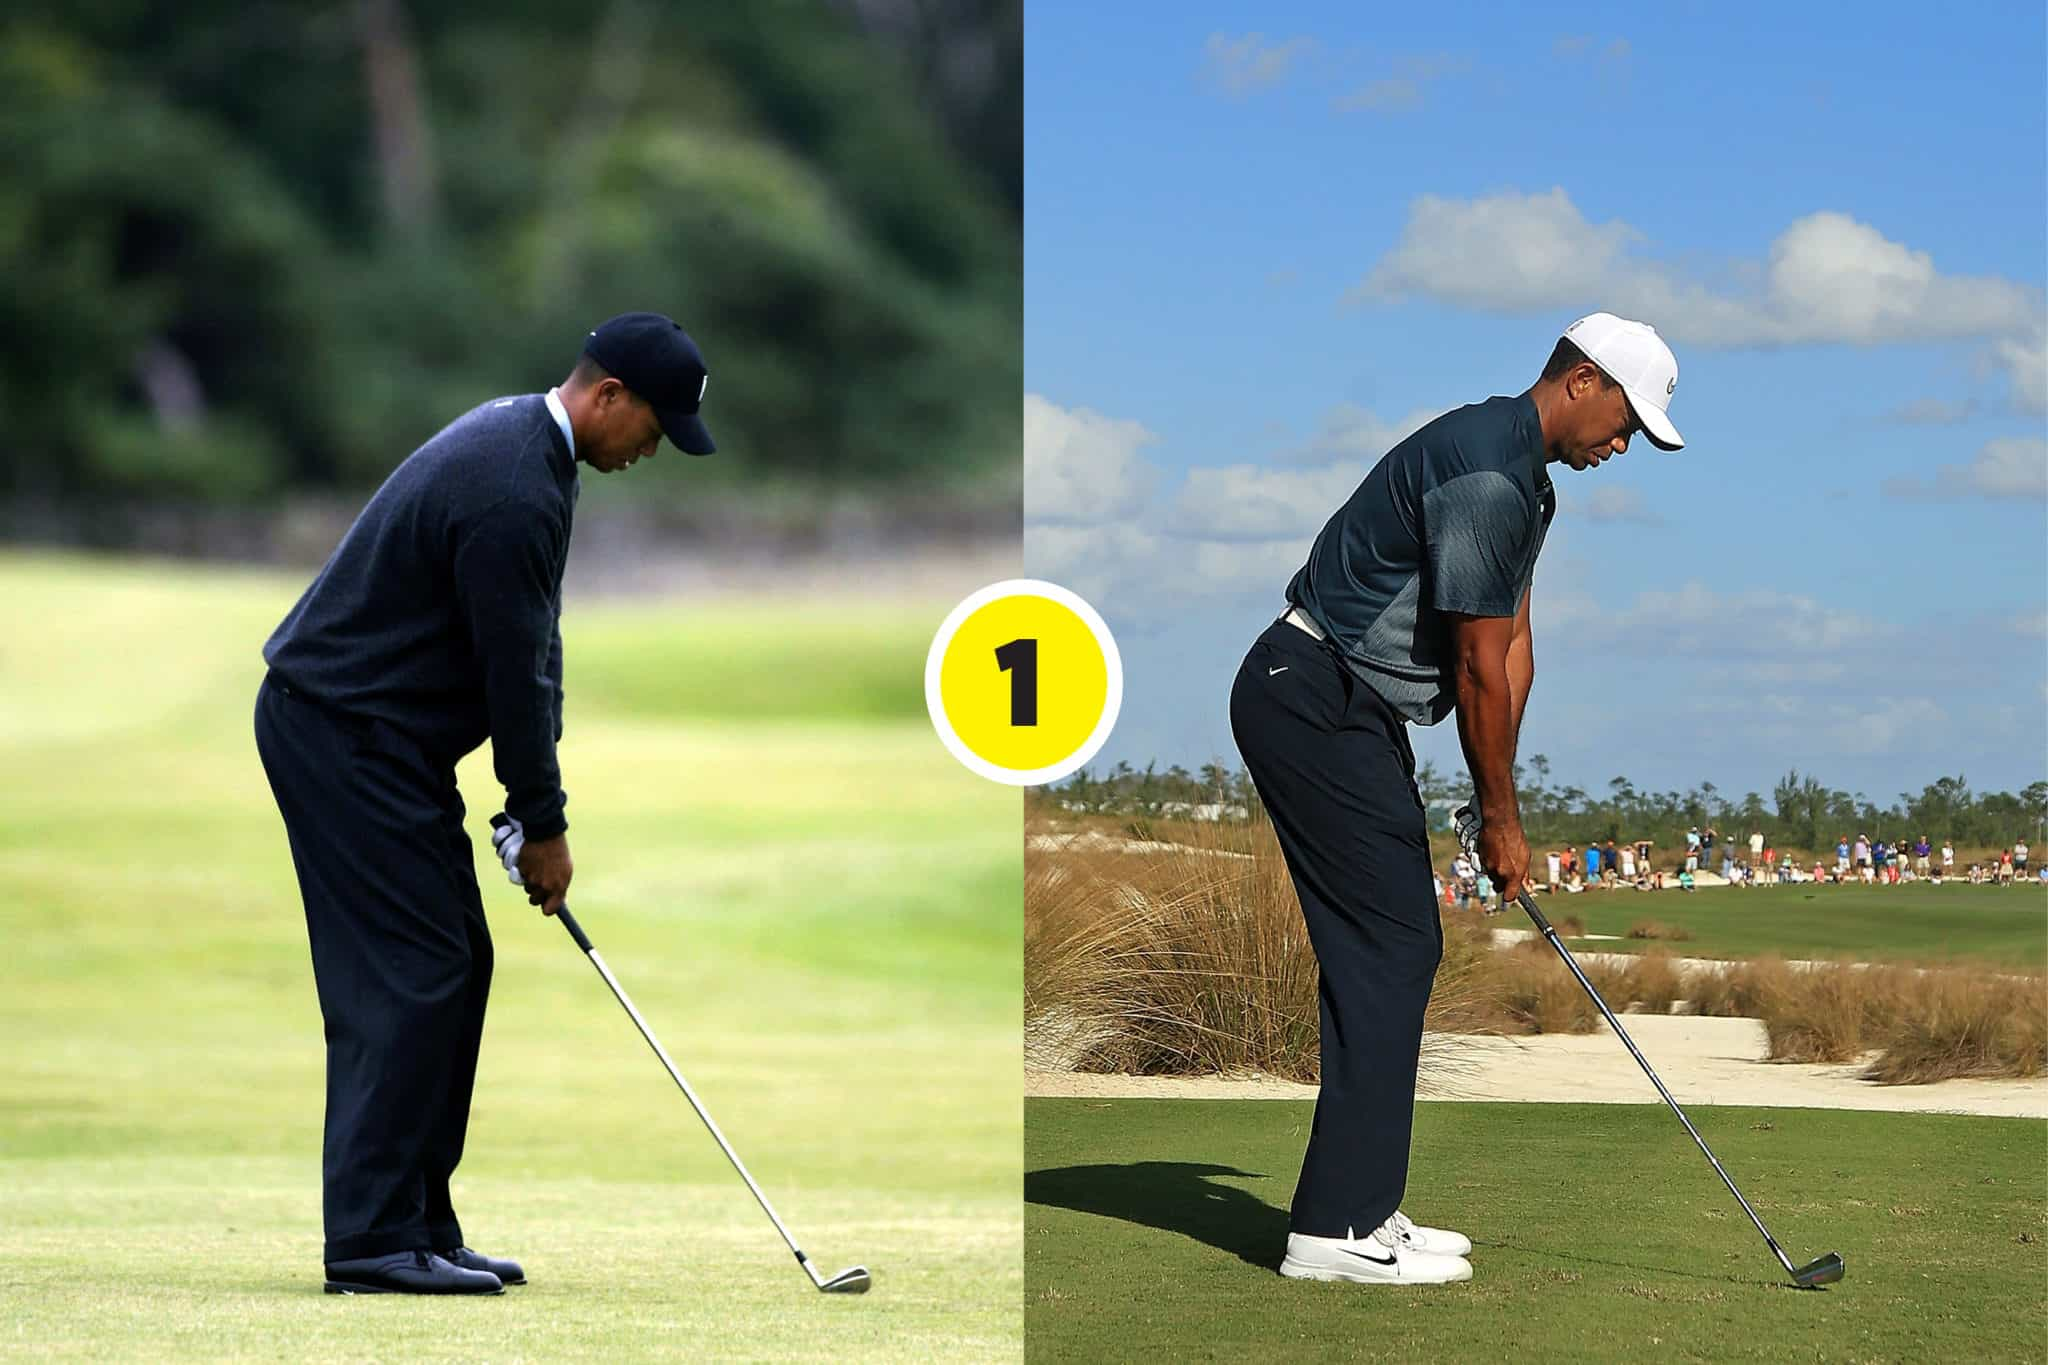 Swing Sequence By Pete Cowen Tiger S Swings Compared